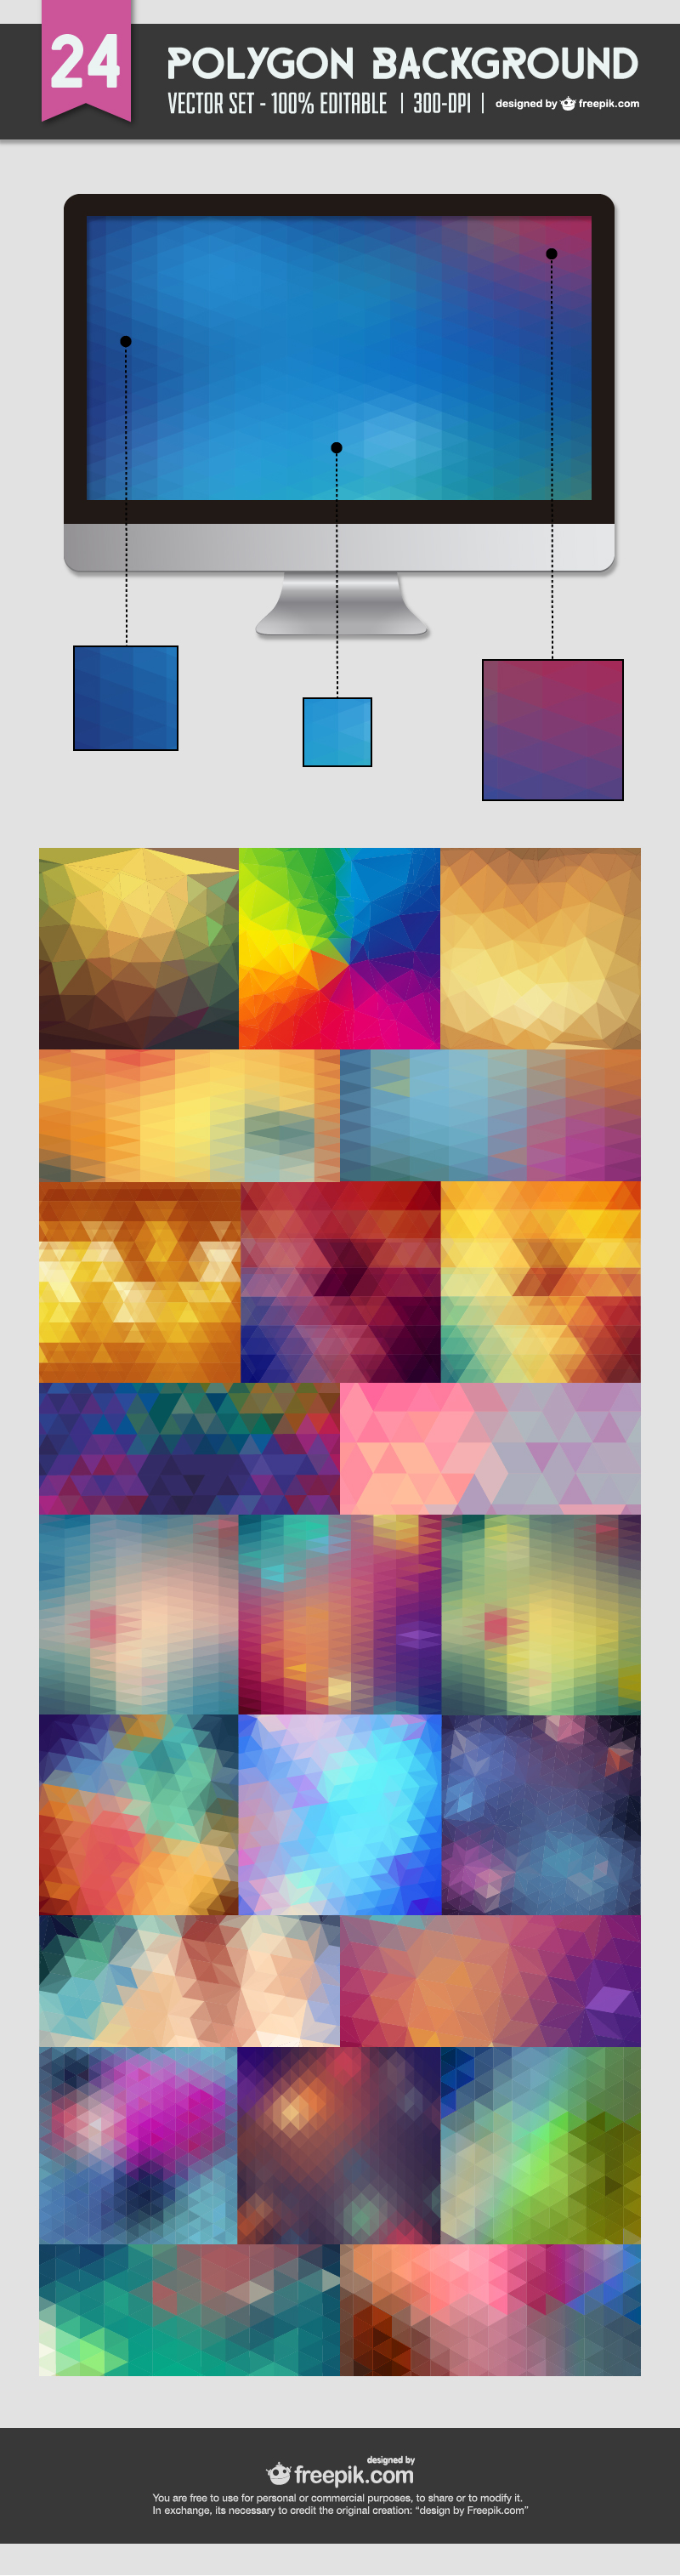 24-polygon-backgrounds-